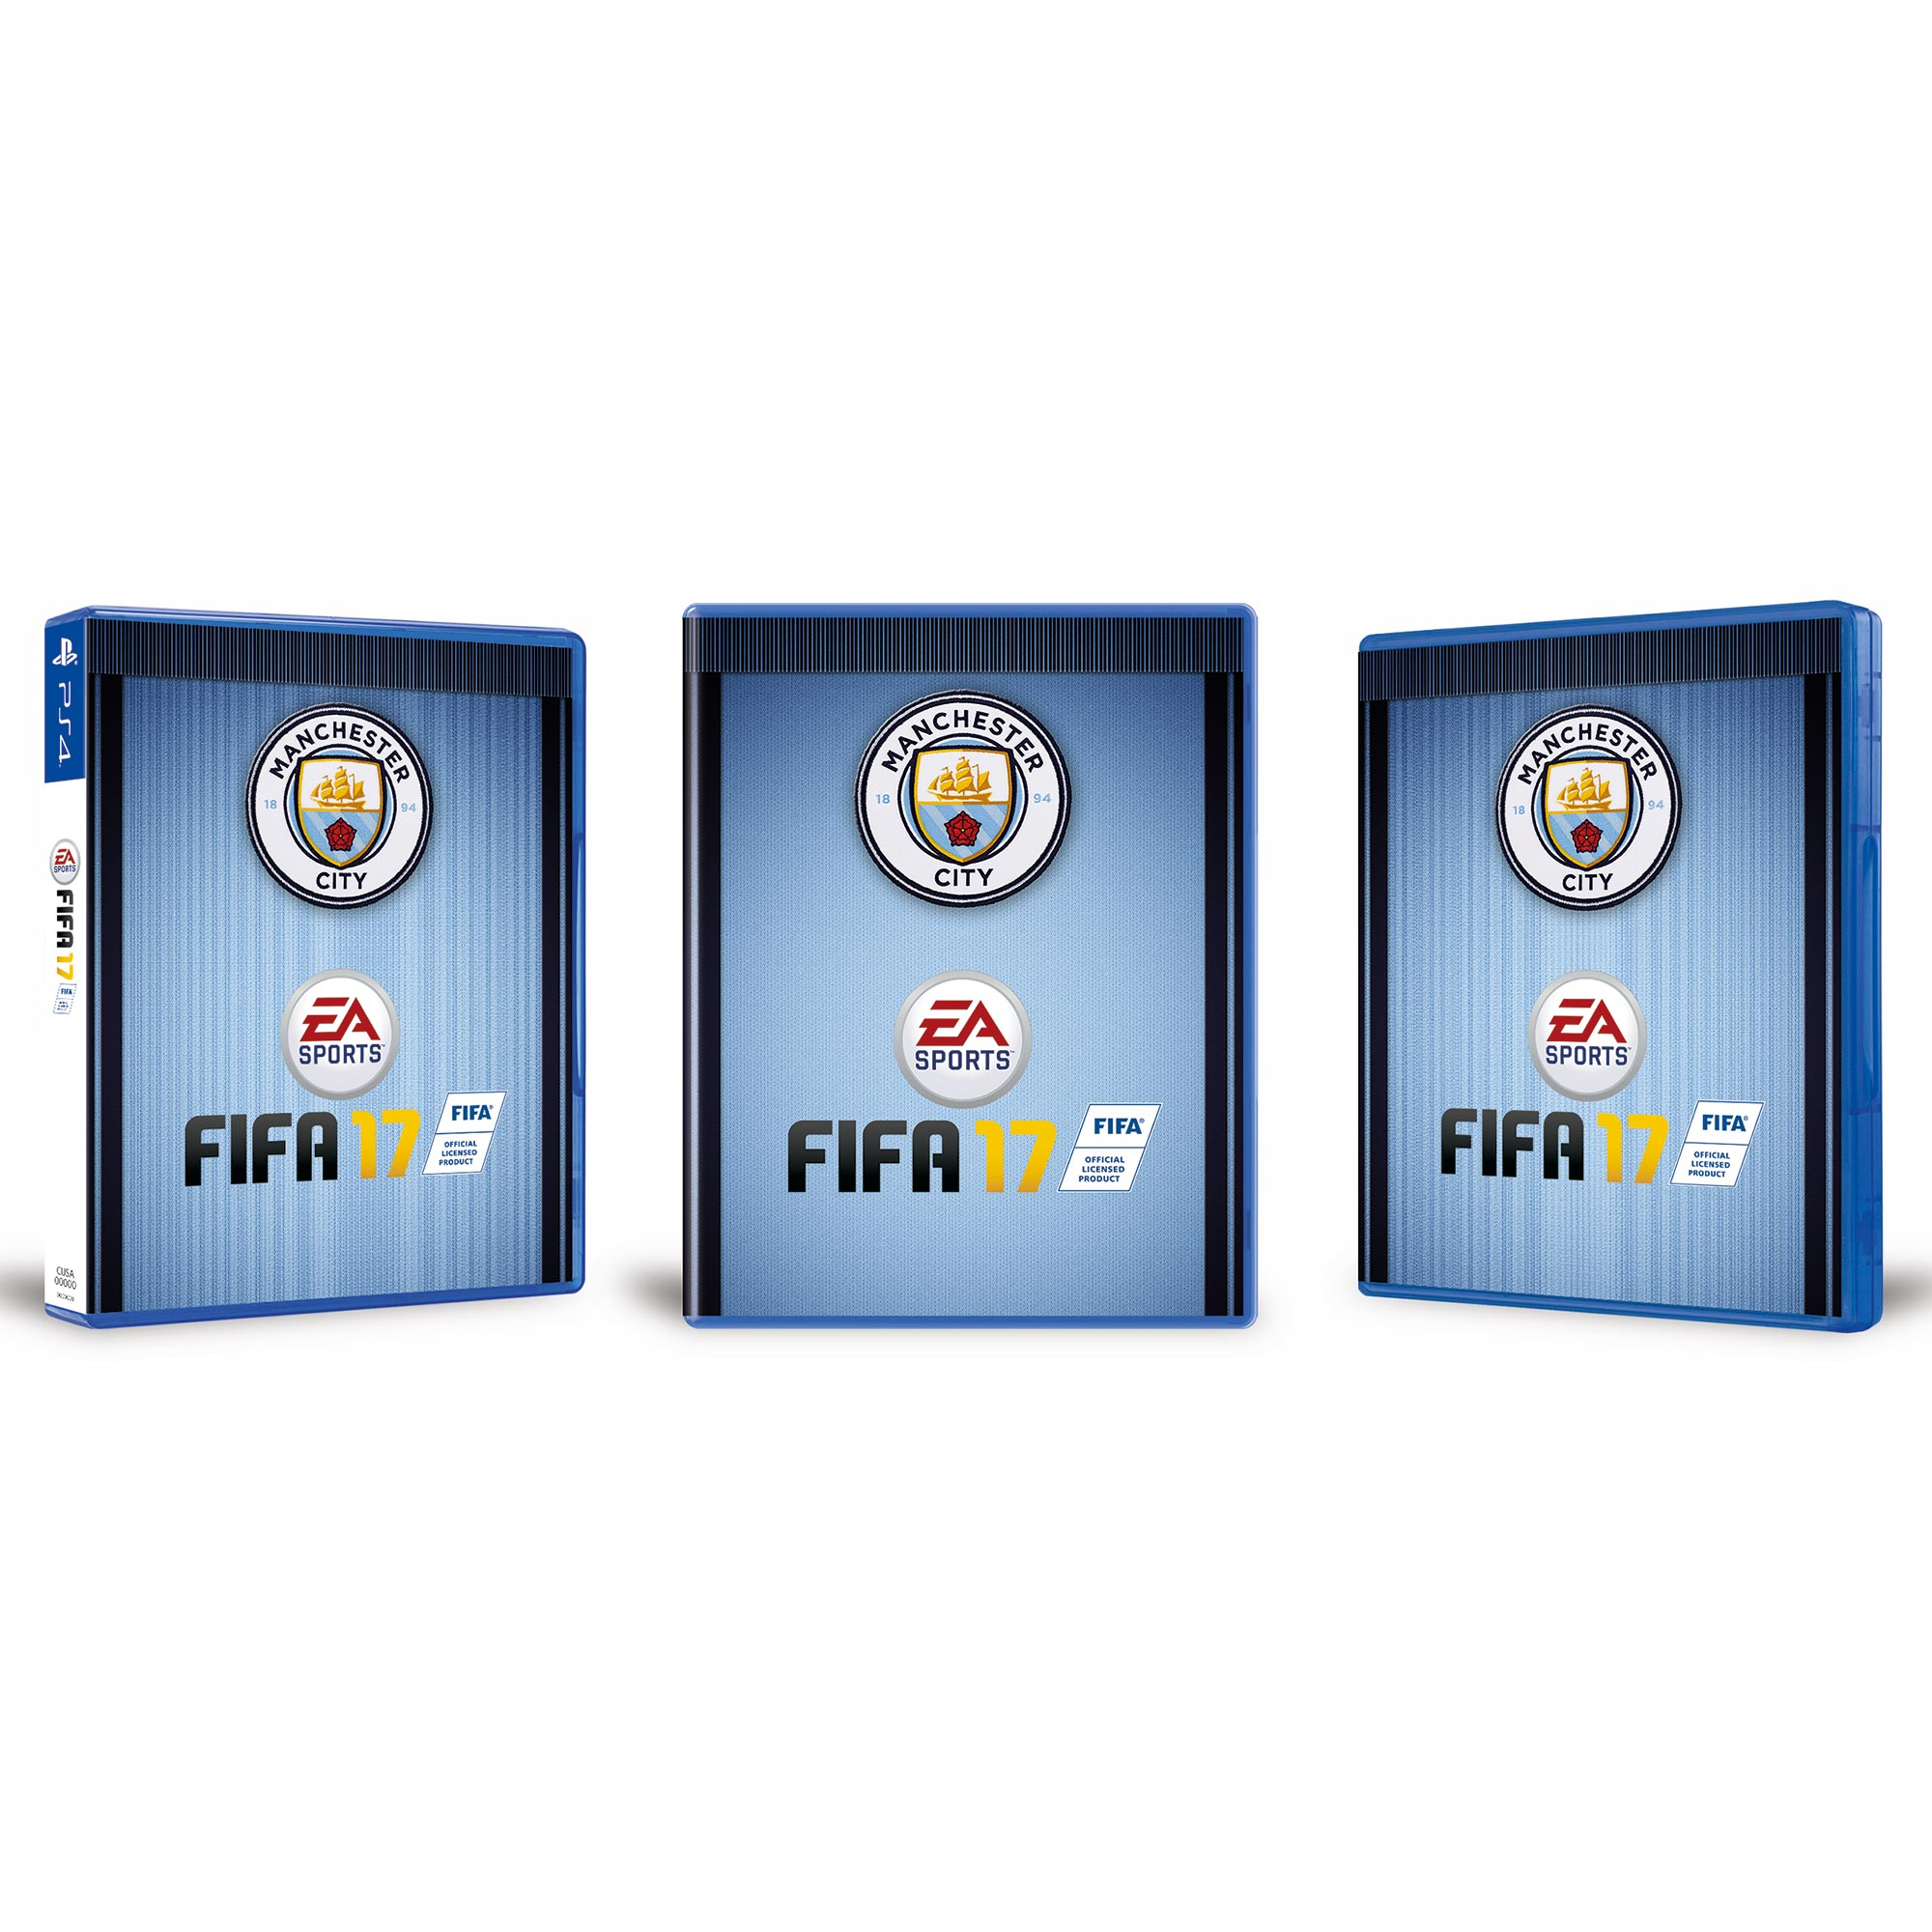 Manchester City FIFA 17 - Club Cover - PS4 Game